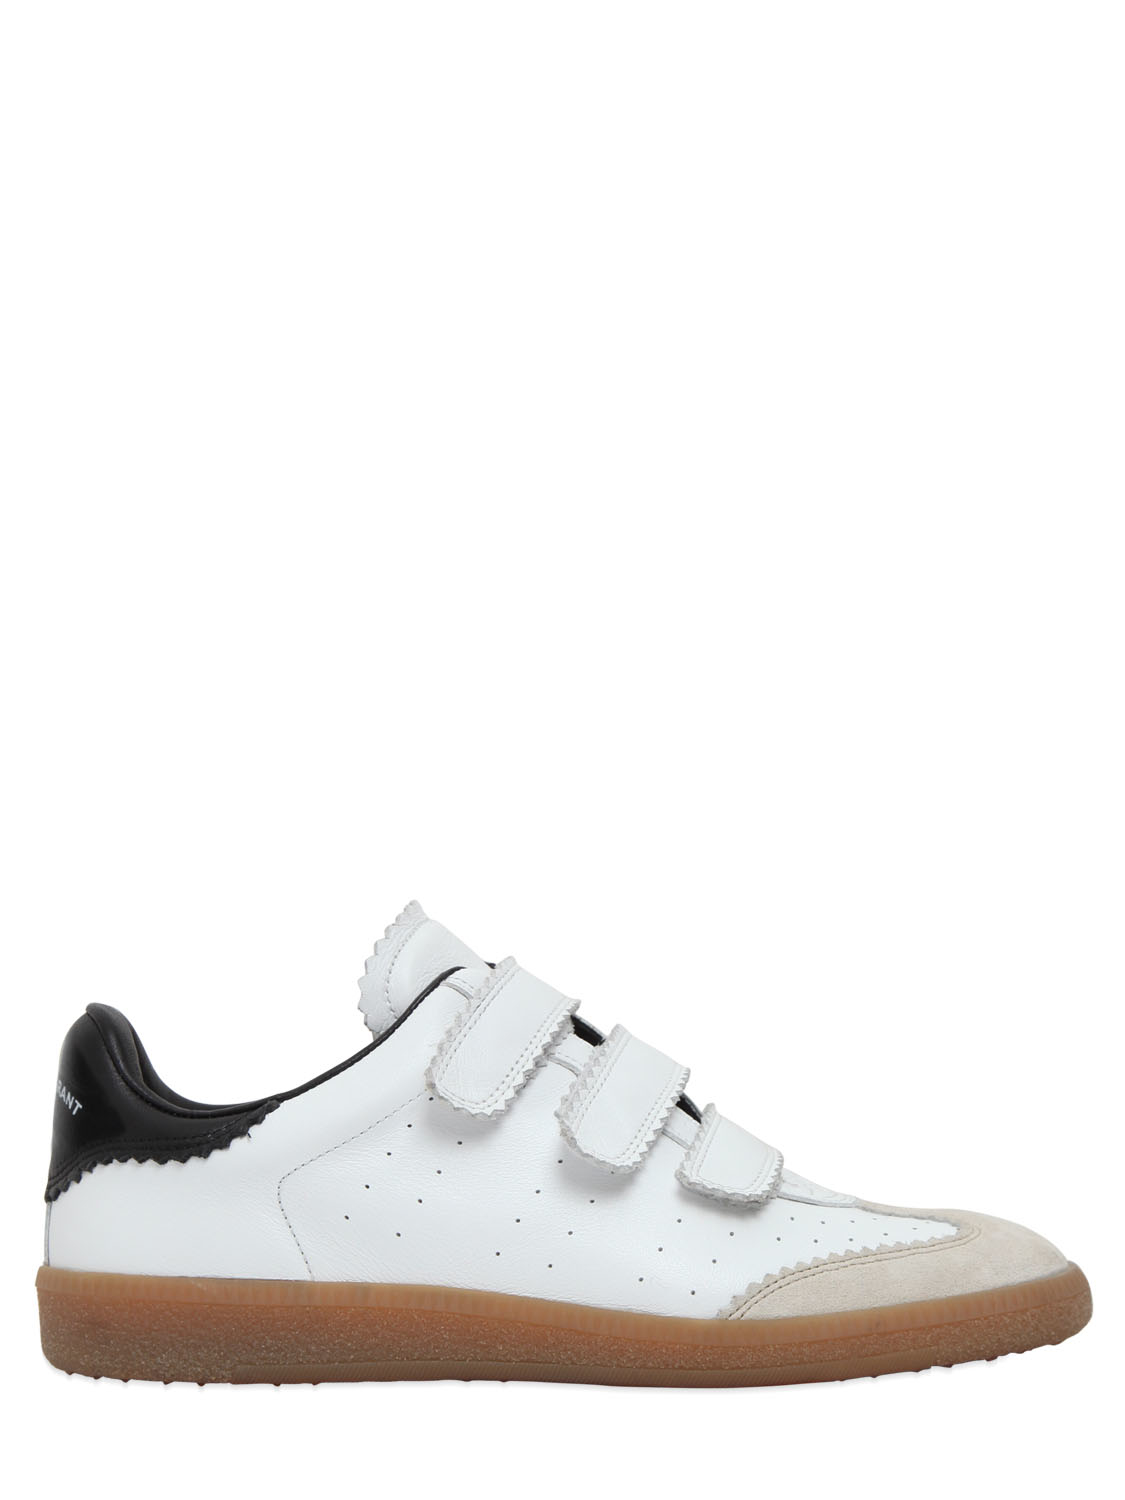 isabel marant etoile beth leather sneakers in white white. Black Bedroom Furniture Sets. Home Design Ideas